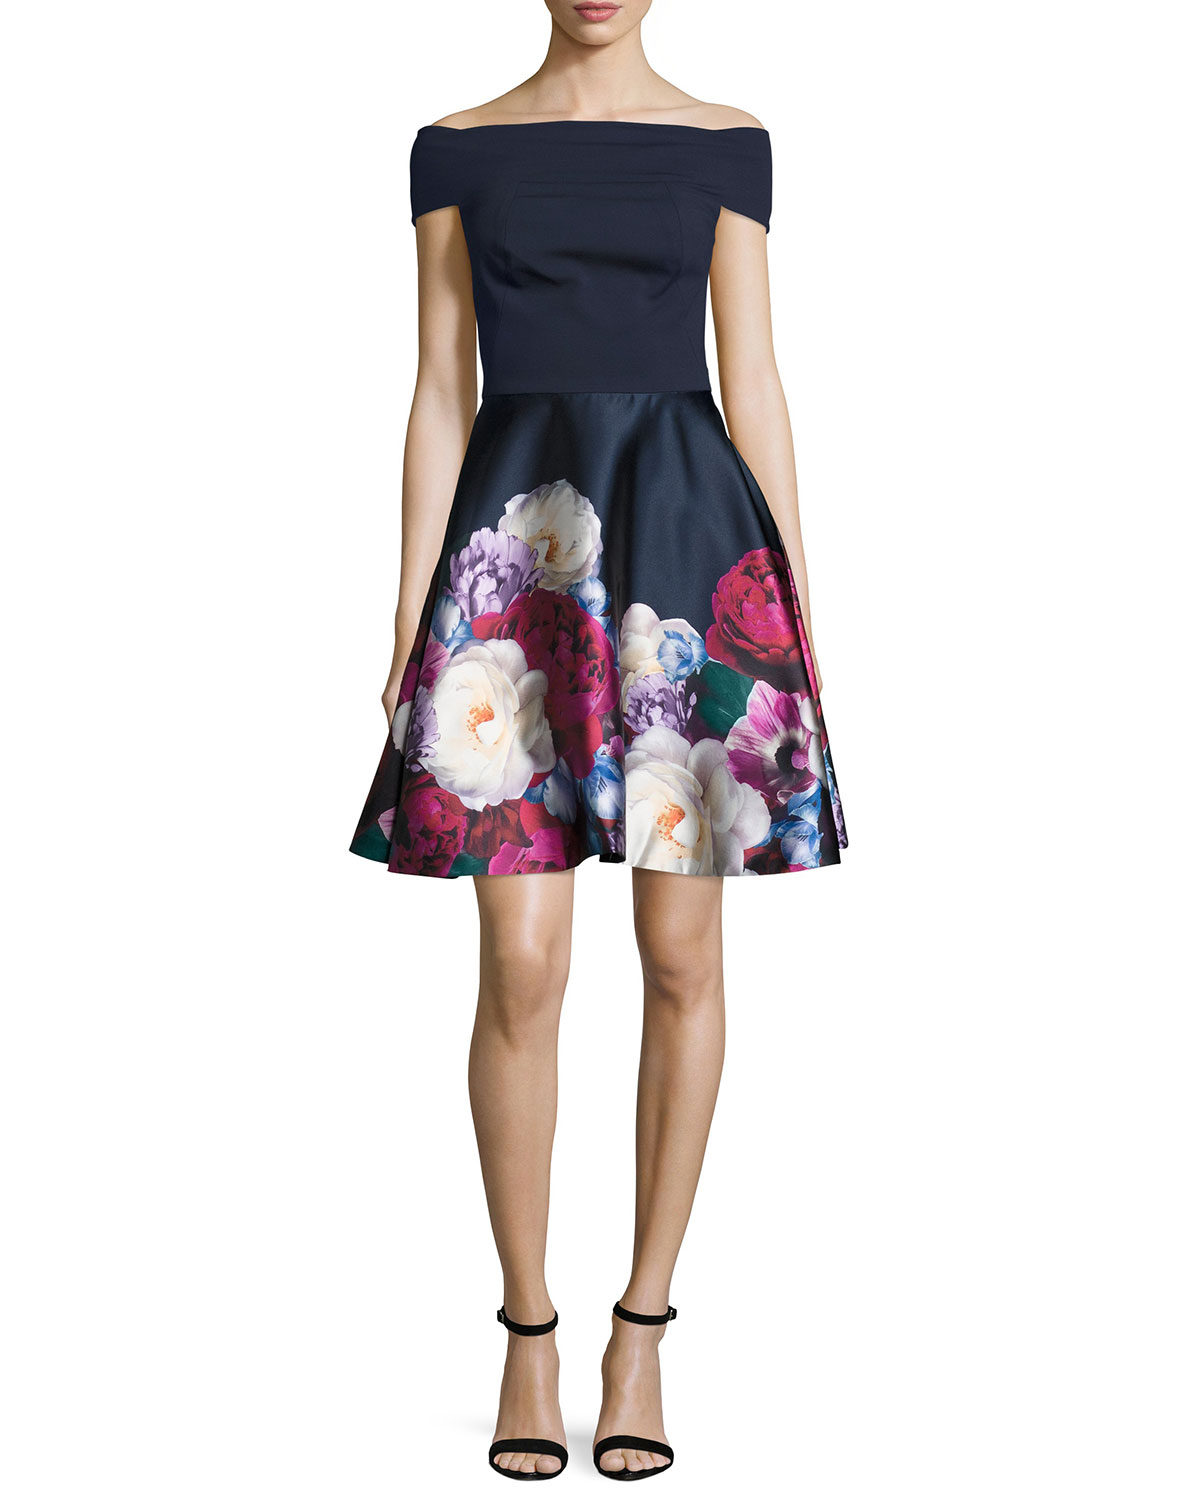 Nersi Blushing Bouquet Floral-Print Off-the-Shoulder Bardot Dress, Navy